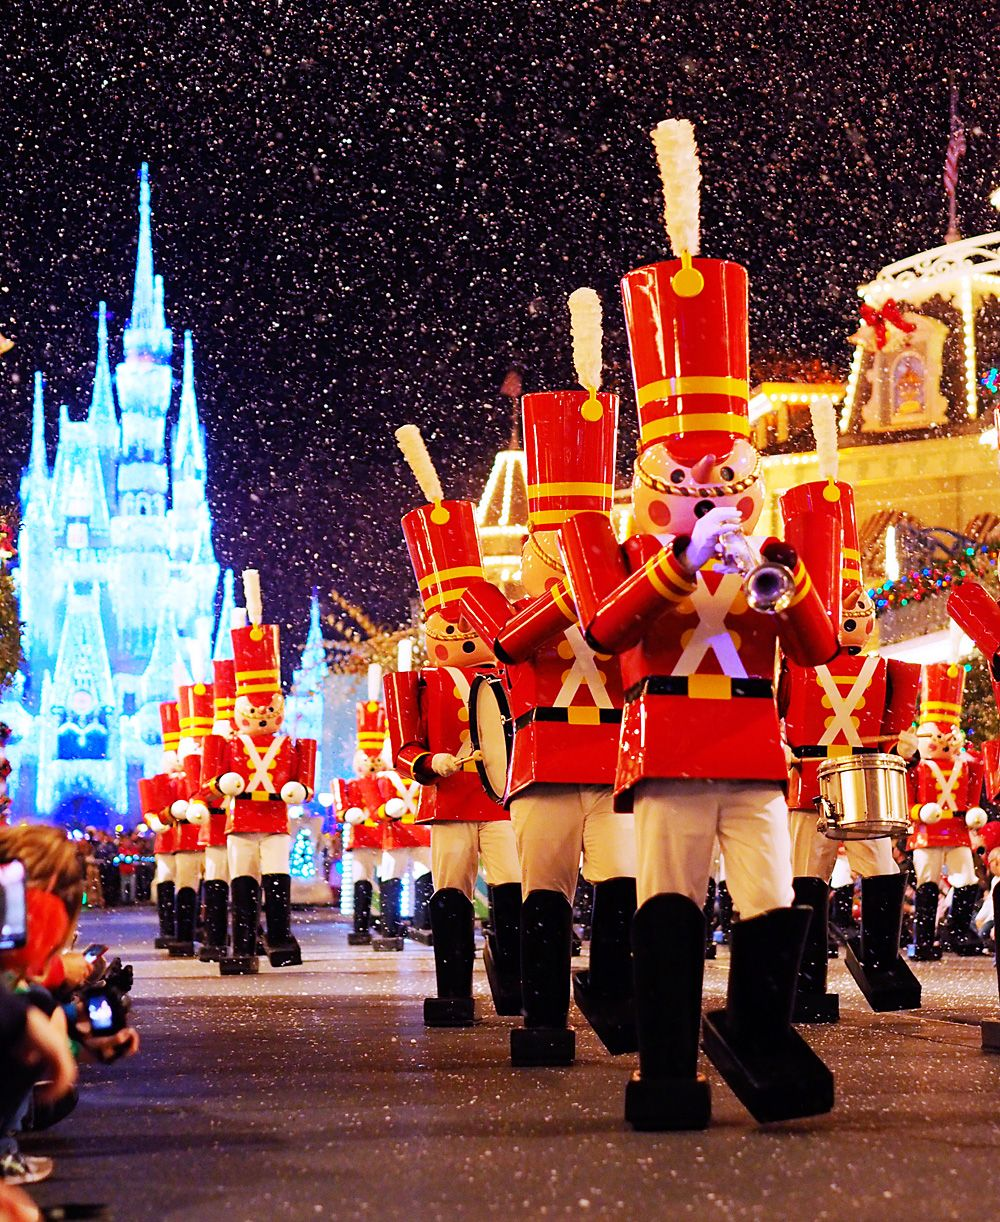 Walt Disney World At Christmas Disney World Christmas Disney World Disney Christmas